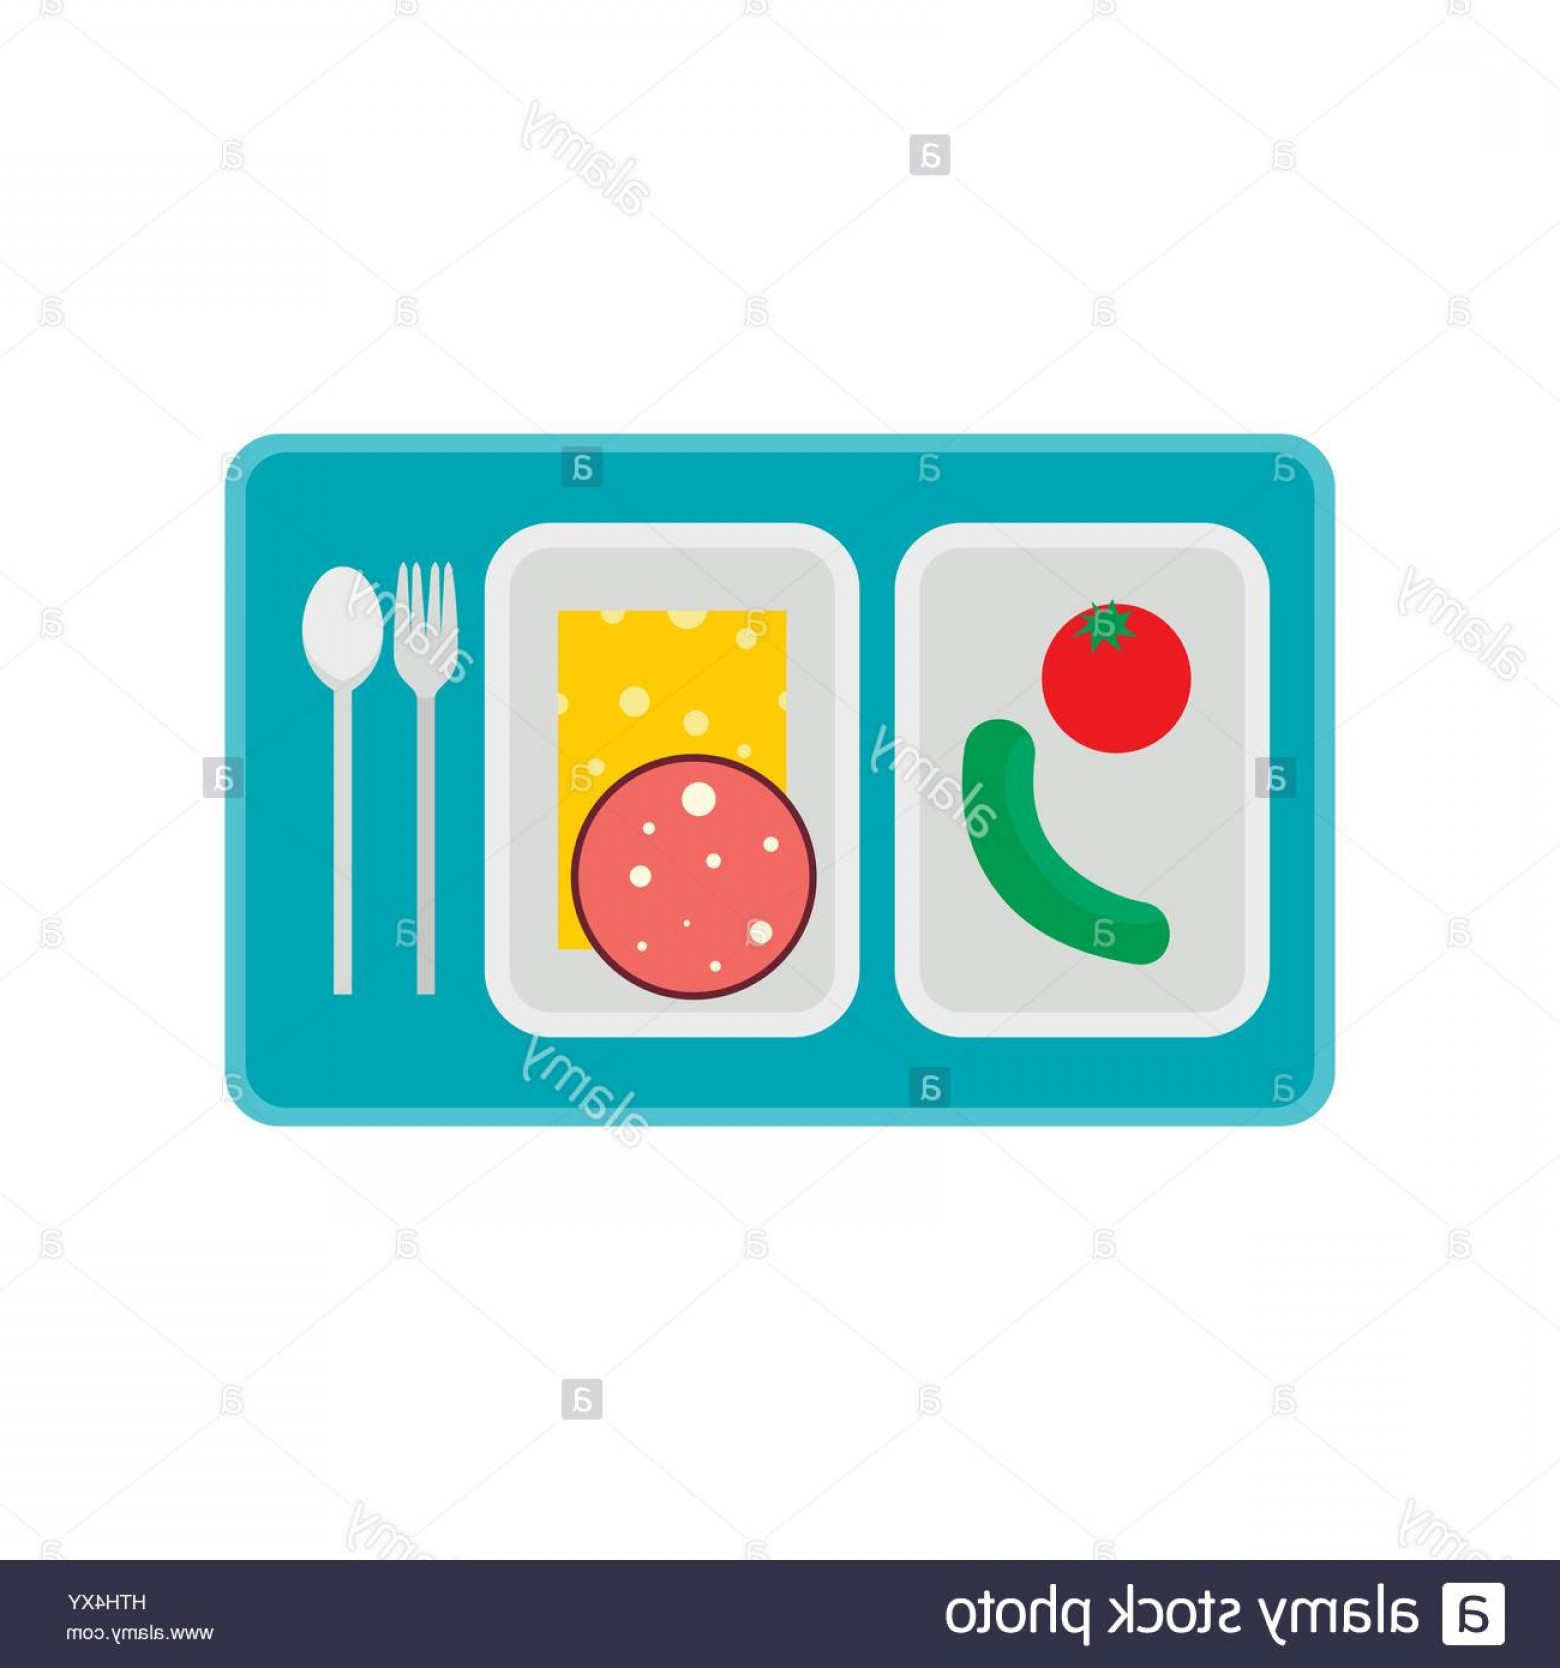 L Unch Icon In Vector: Stock Photo Airplane Lunch Icon